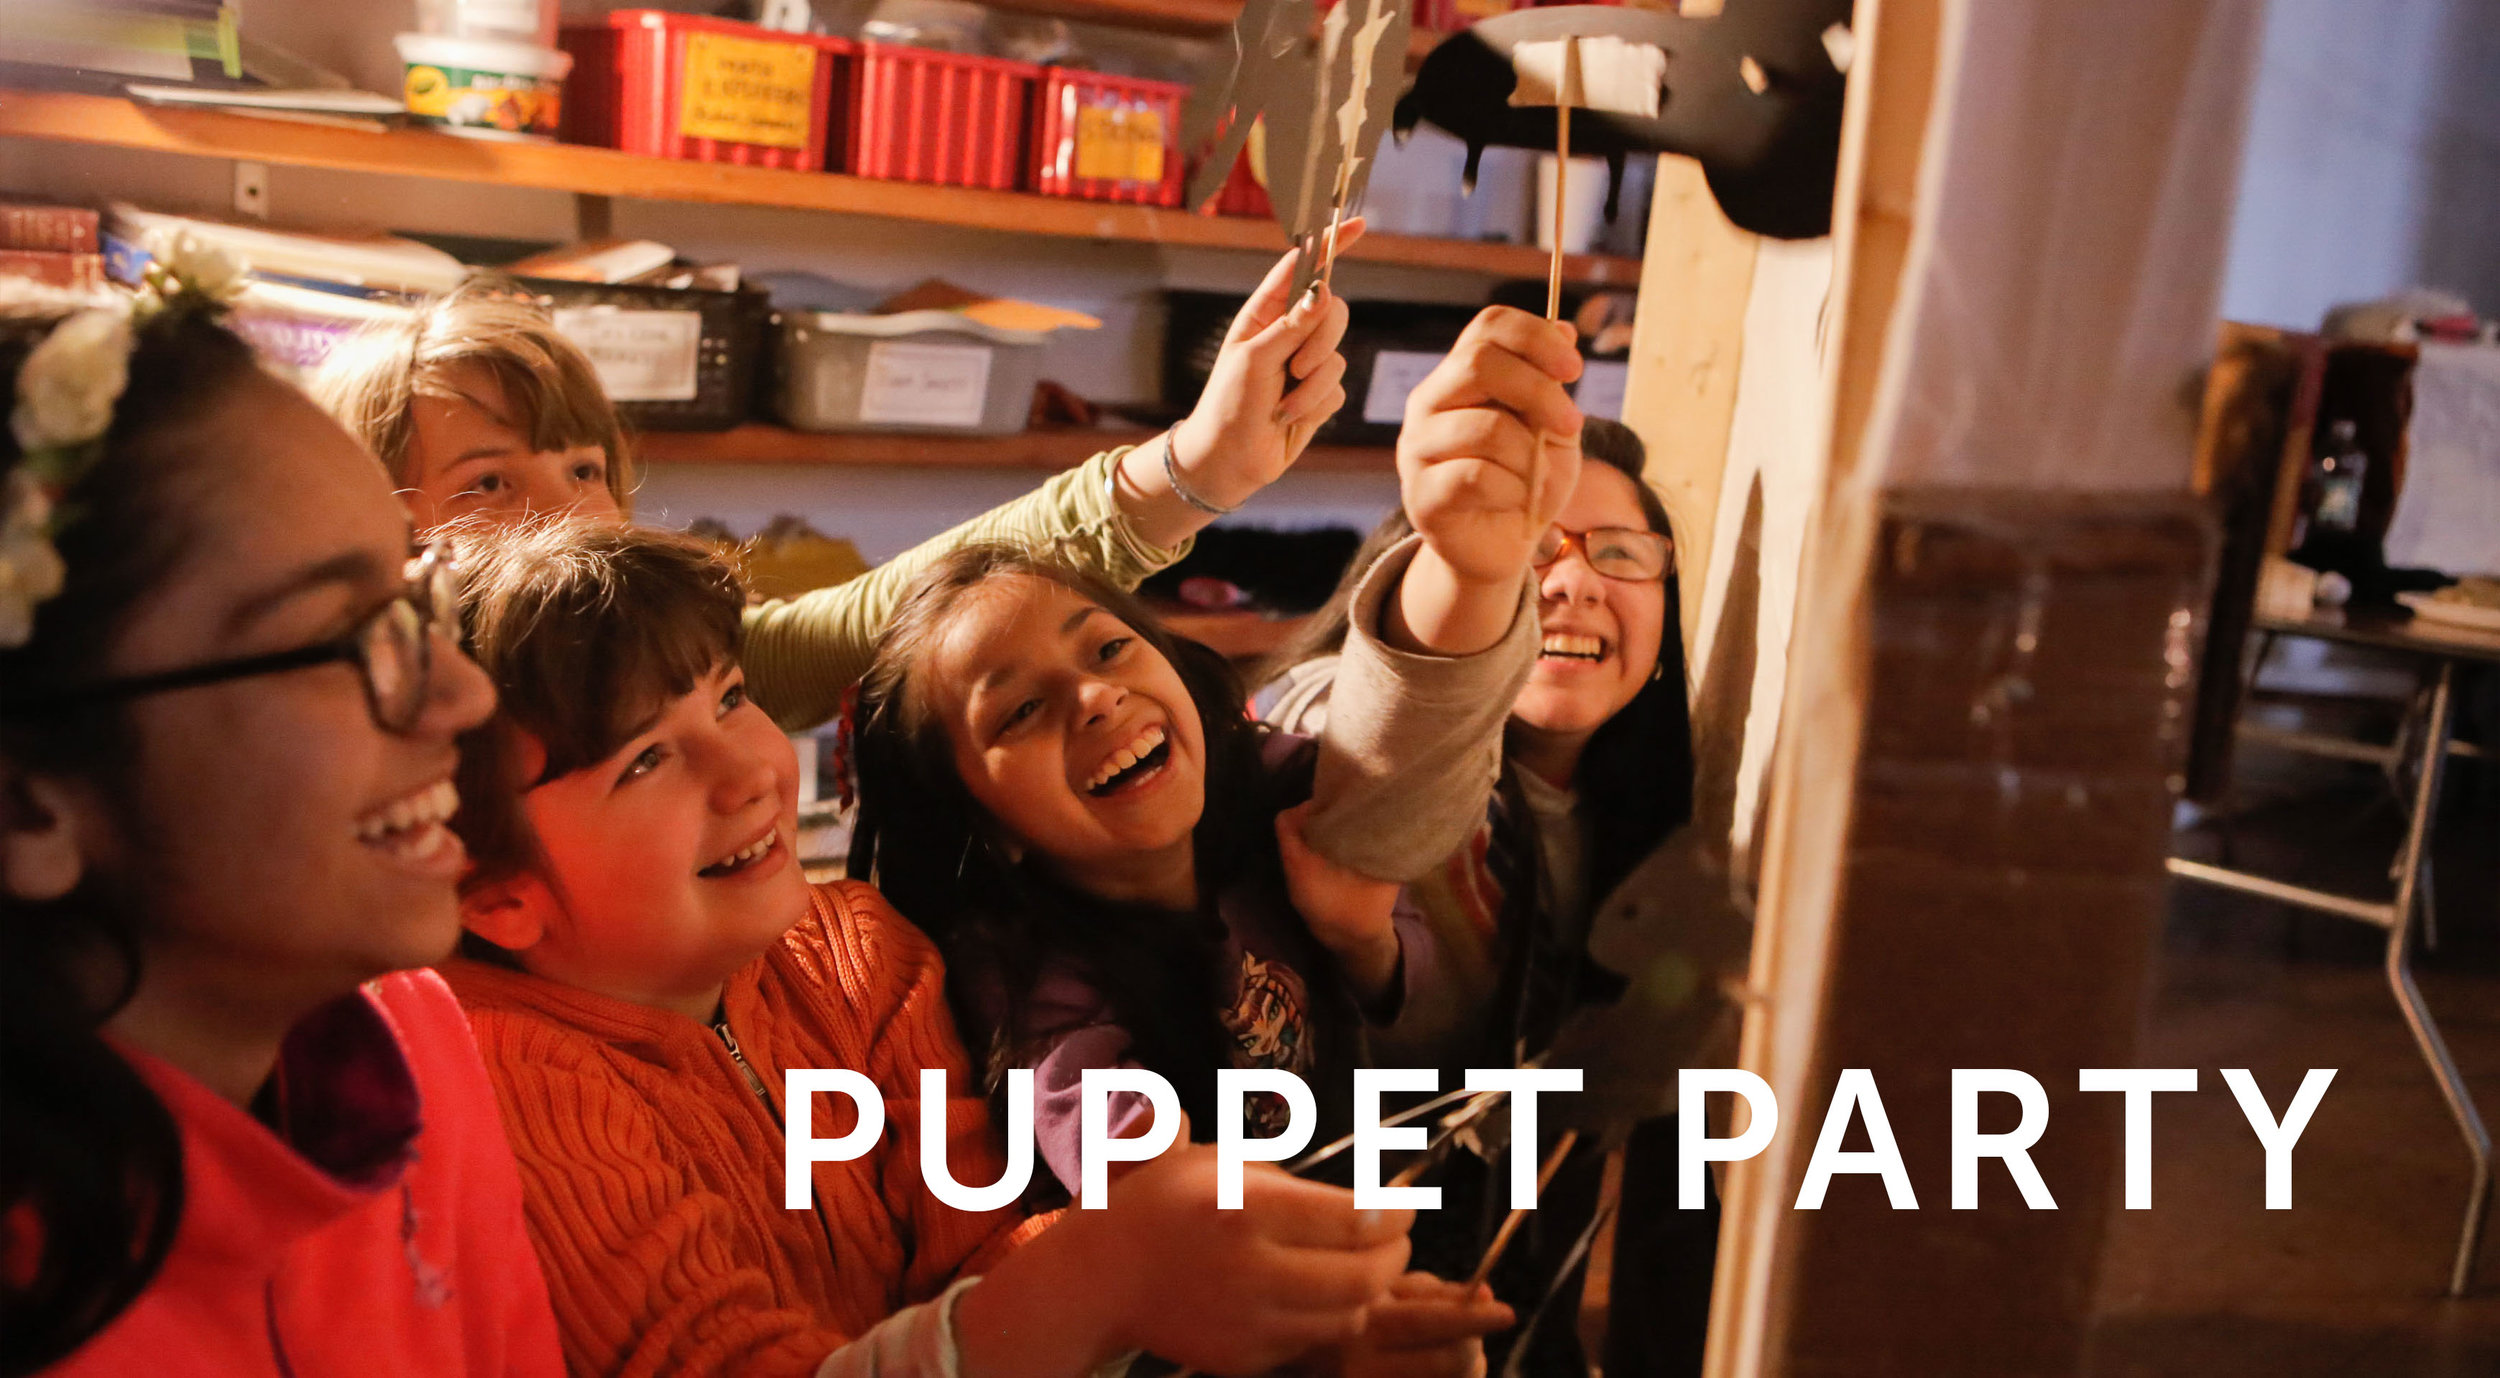 PuppetParty1.jpg